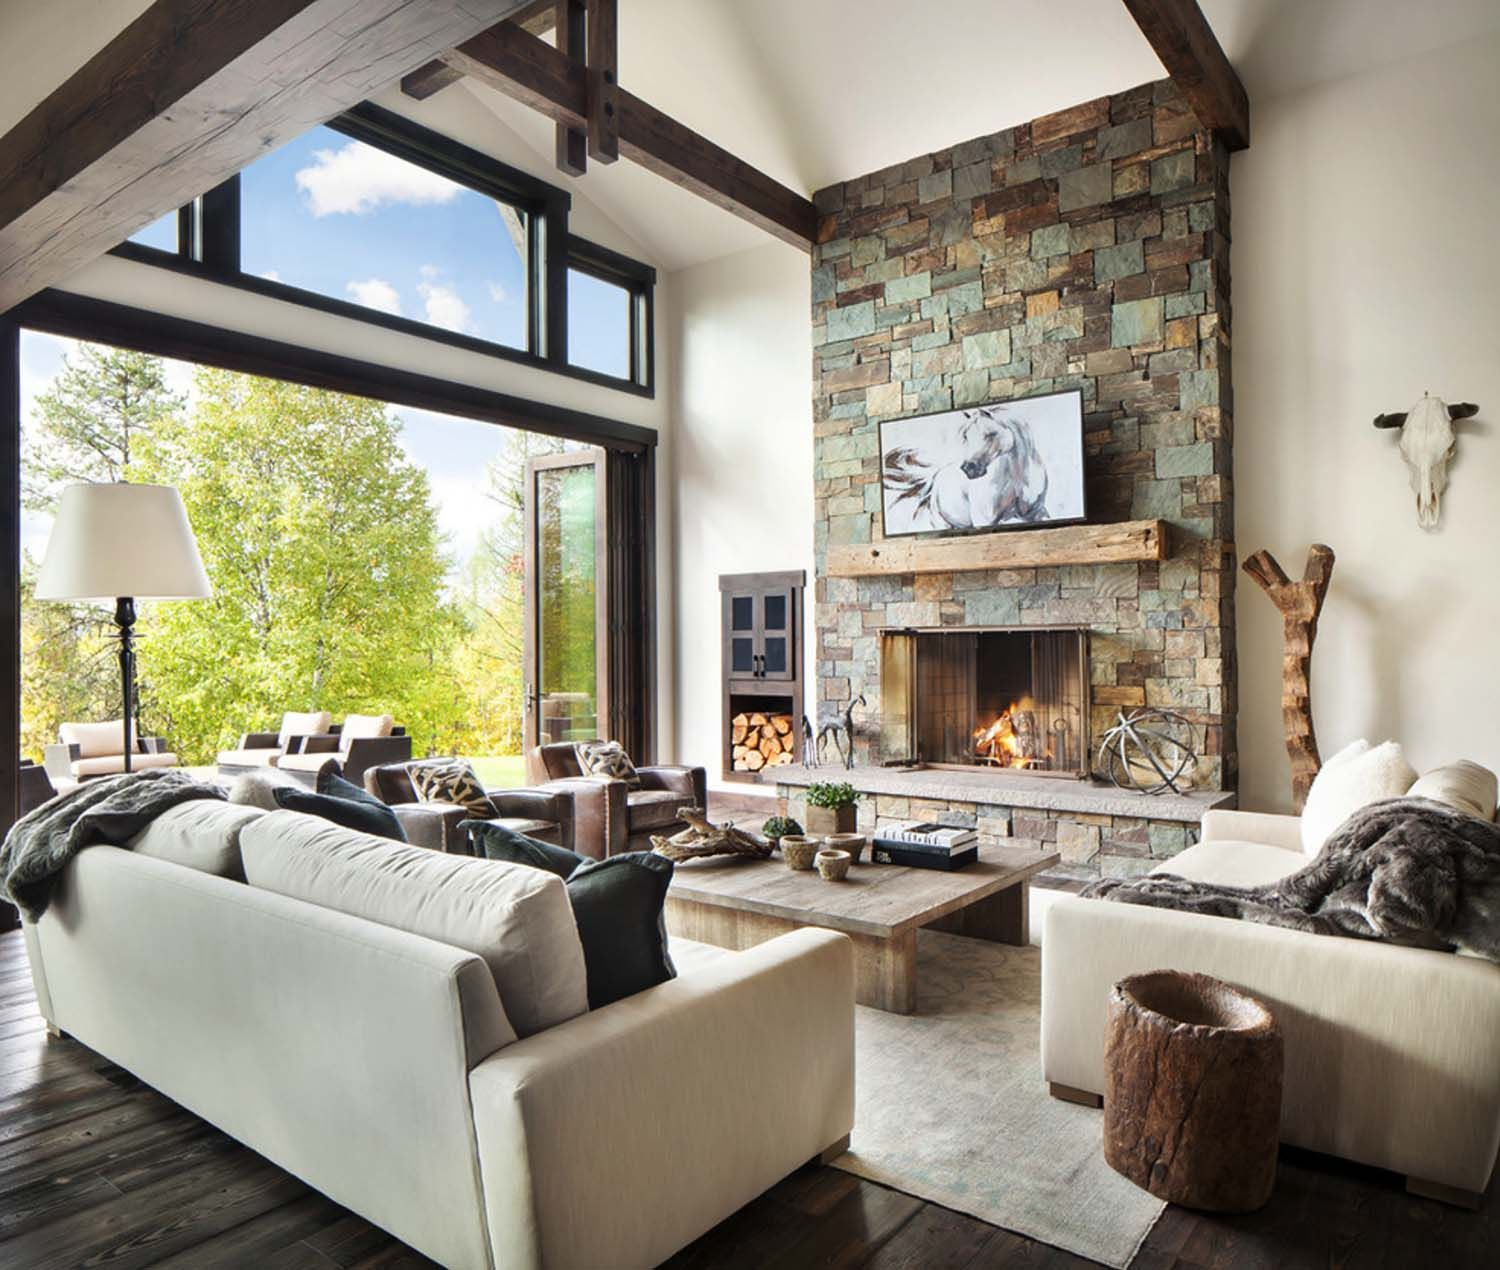 Images Of Modern Rustic Living Rooms White Sofa Room Dwelling Nestled In The Northern Rocky Mountains This Beautifully Designed Is Creative Imagination Sage Interior Design Located Whitefish Montana